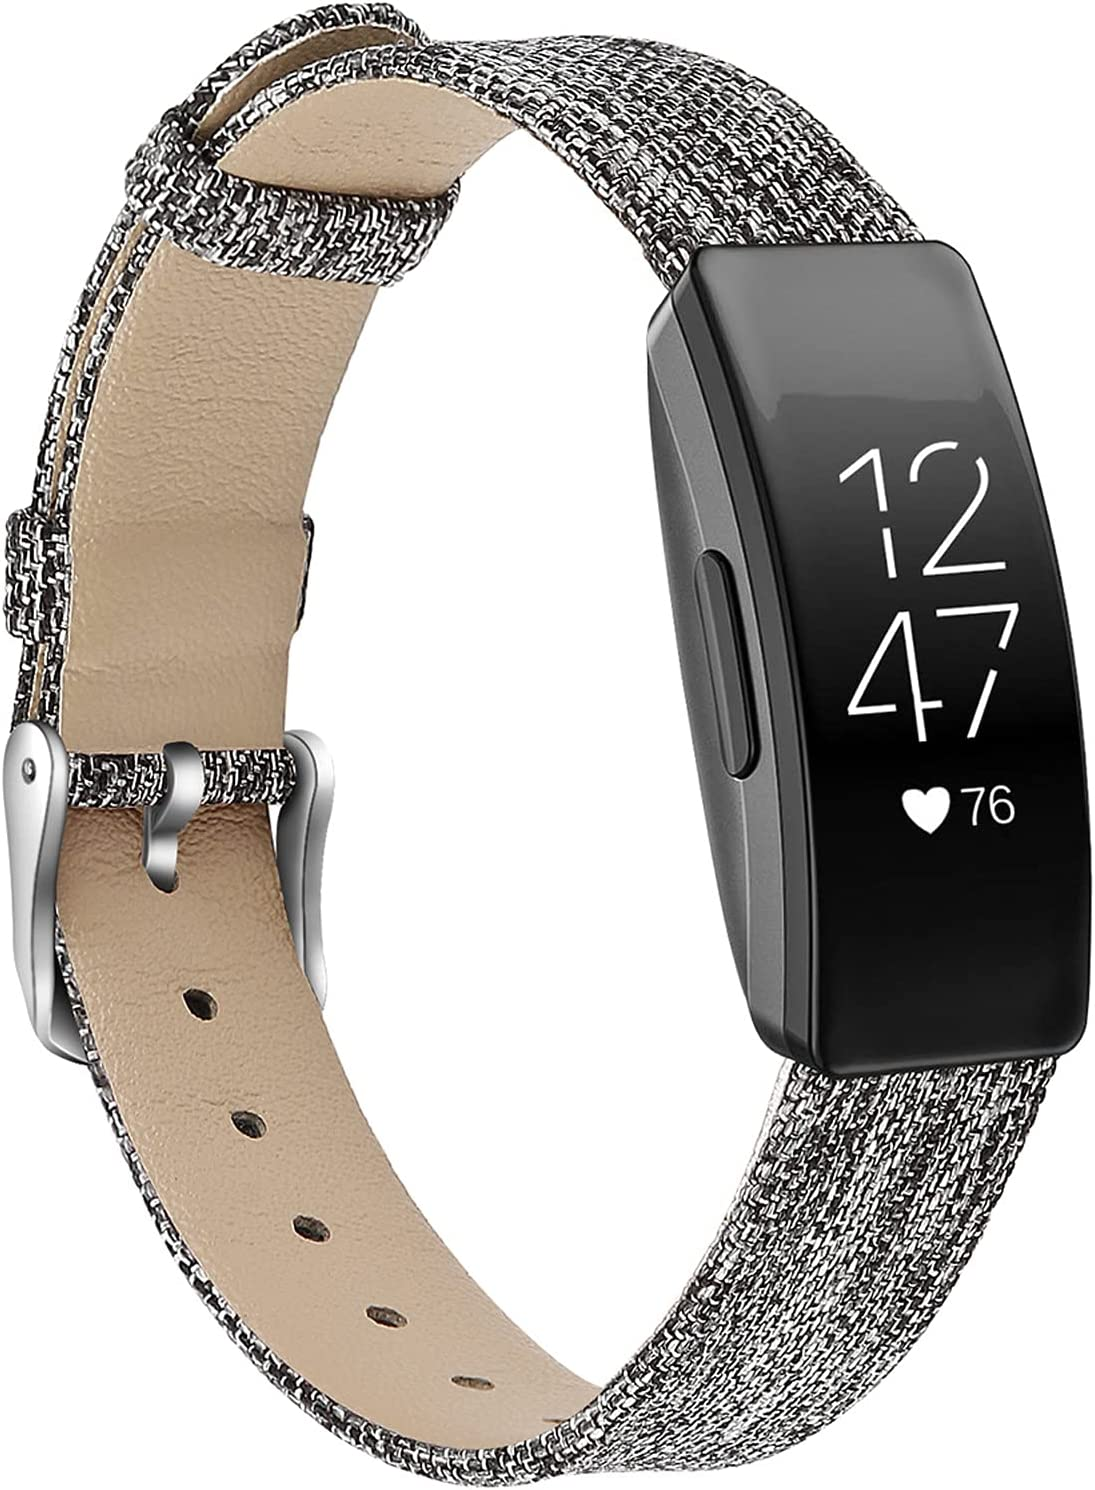 Inspire Smart Bracelet, MVRYCE Stylish Genuine Leather Replacement Band Canvas Woven Adjustable Bracelet Accessory Strap Compatible with Inspire/Inspire HR/ACE 2 (Large Size 6.7